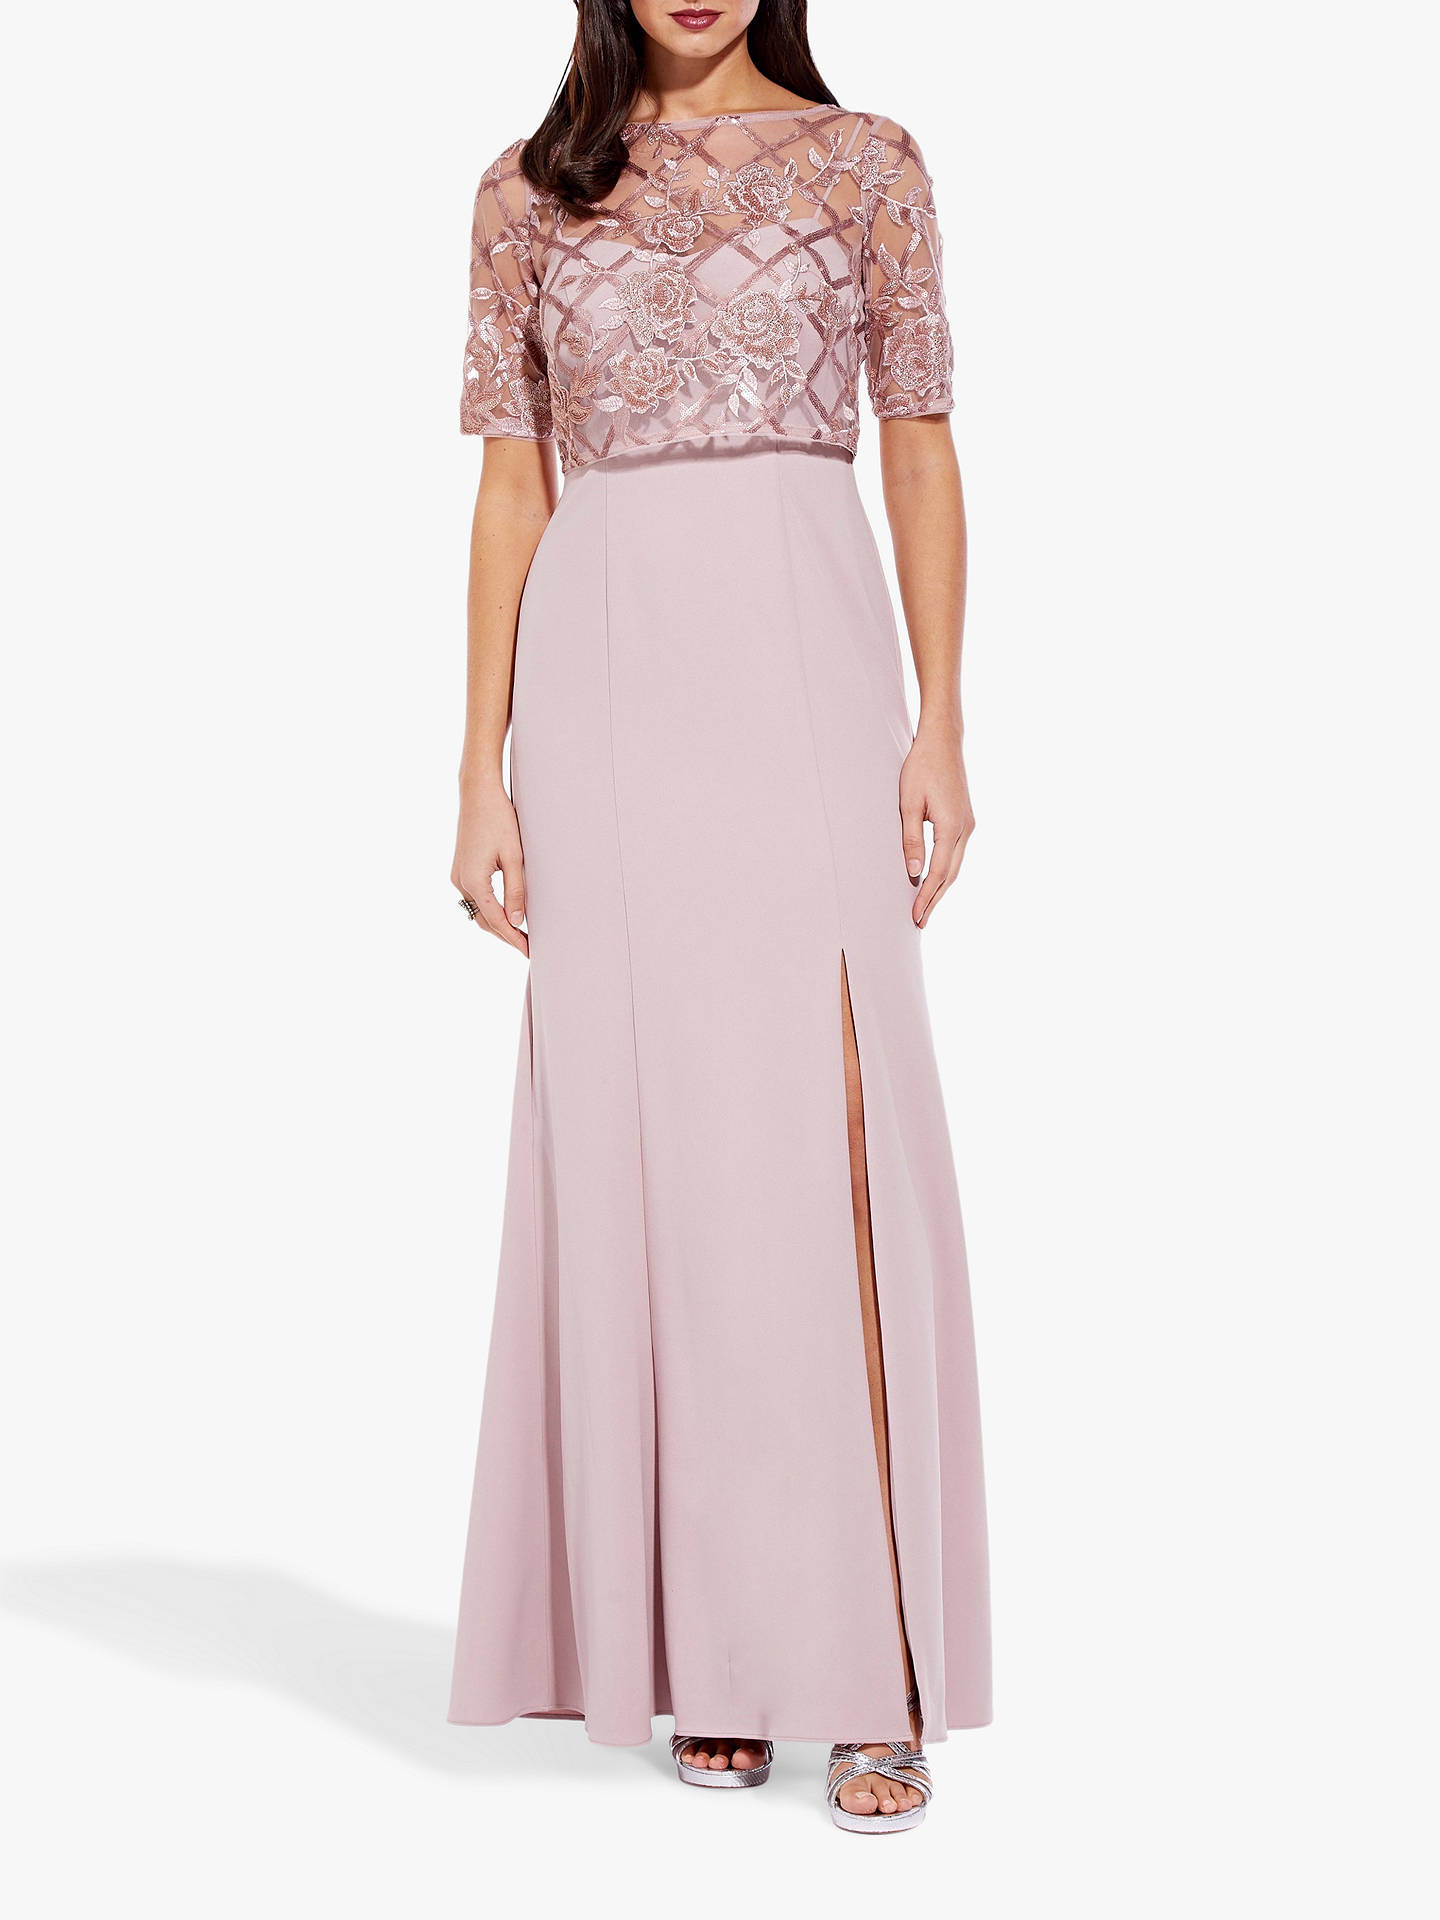 cd4faae3c63 Buy Adrianna Papell Long Sequin Crepe Dress